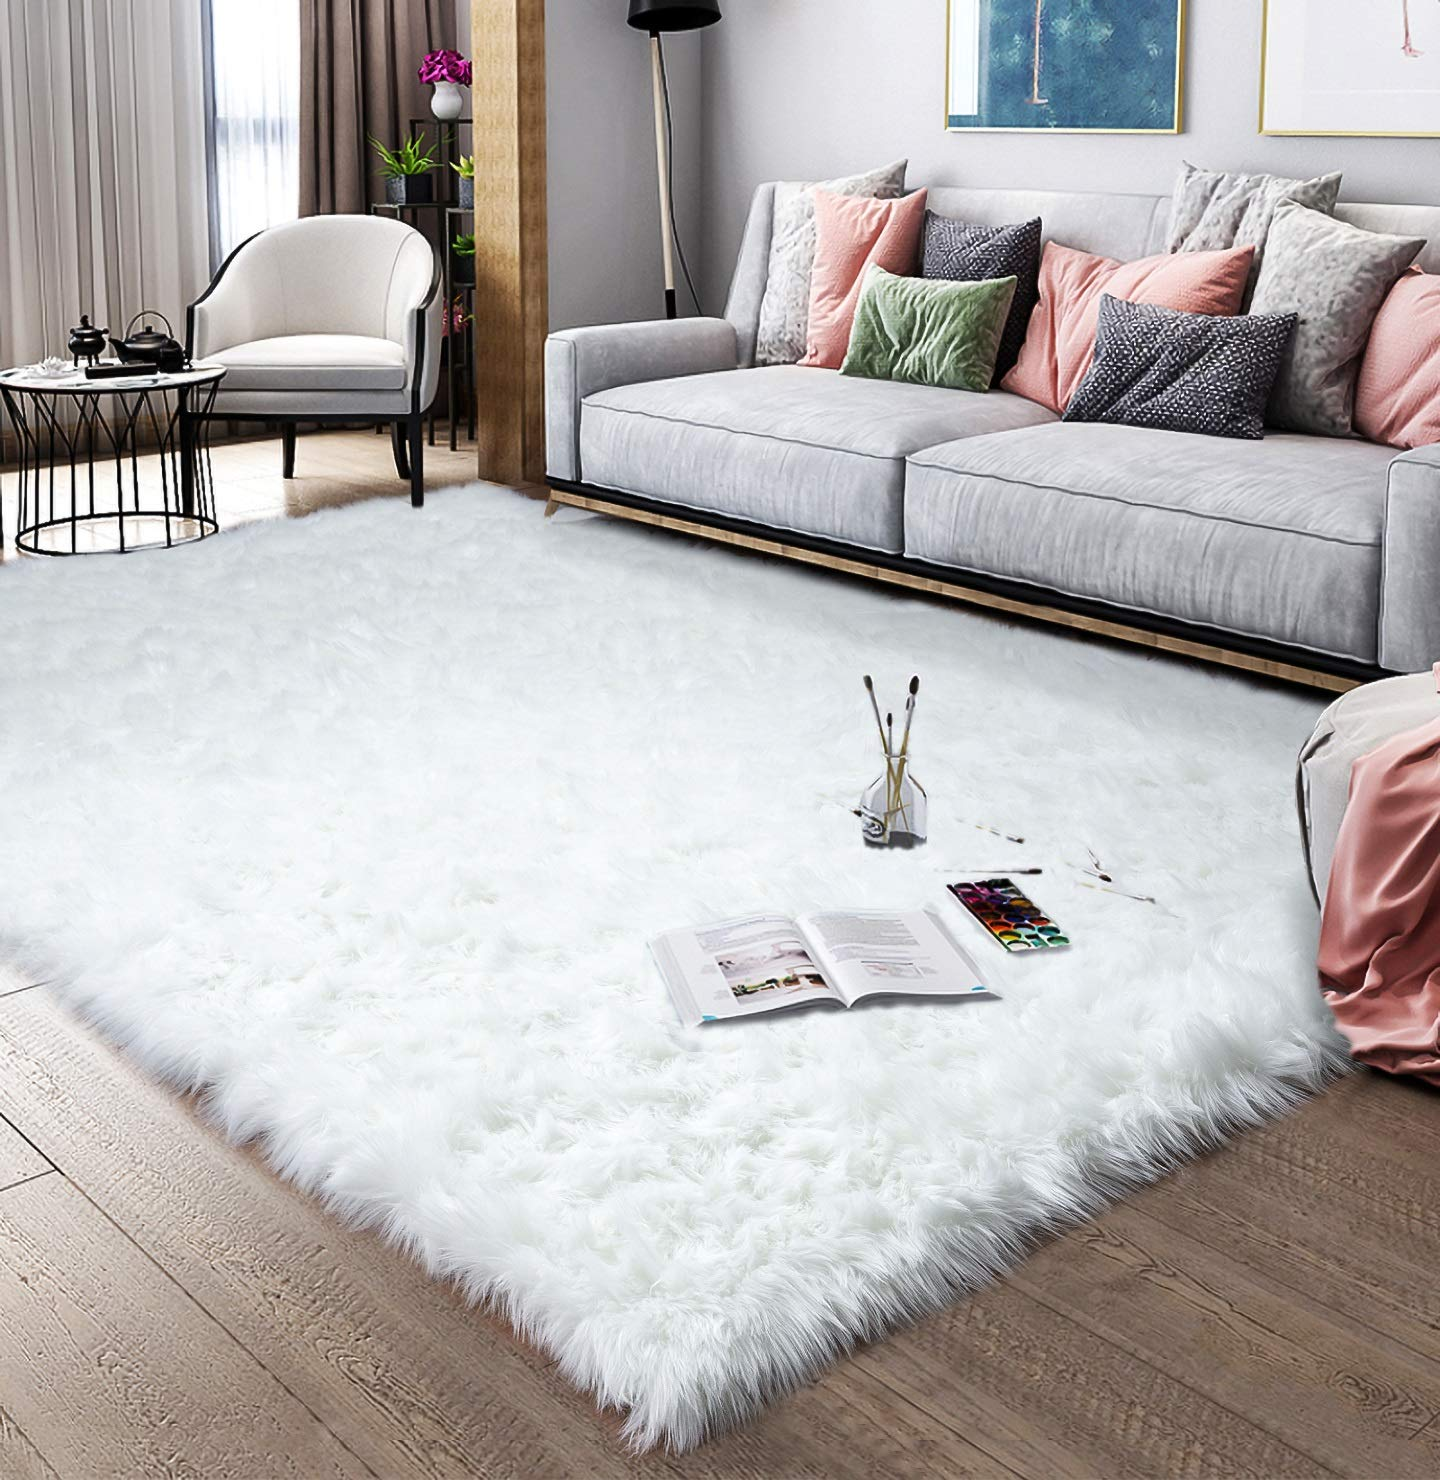 Noahas Faux Sheepskin Area Rugs Silky Long Wool Carpet for Living Room Bedroom, Children Play Dormitory Home Decor Rug, 5ft x 8ft White